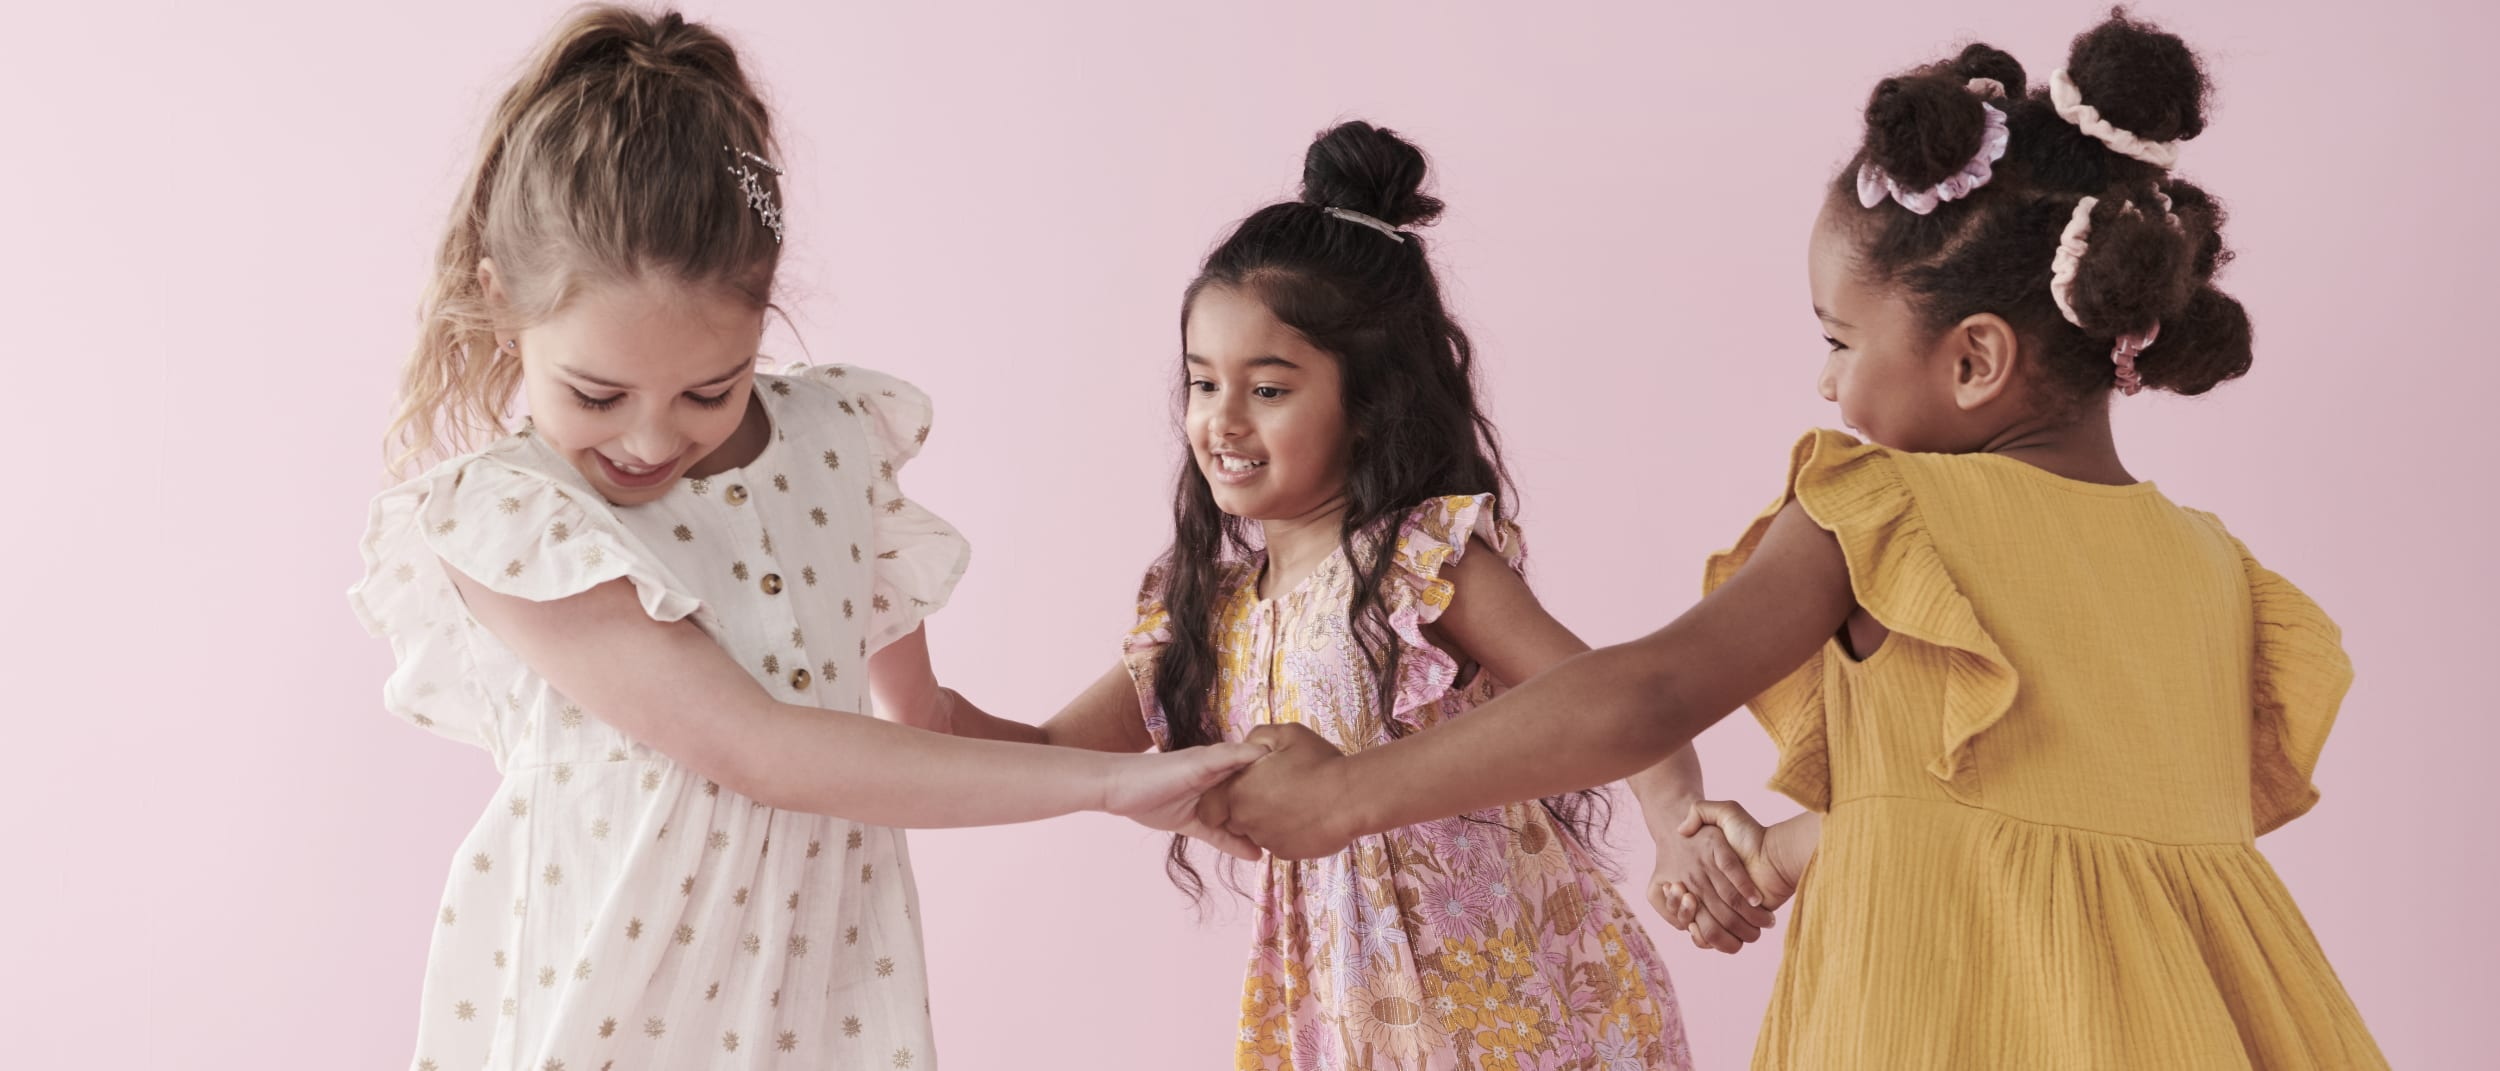 wKids review: Top picks for Summer from Cotton On Kids